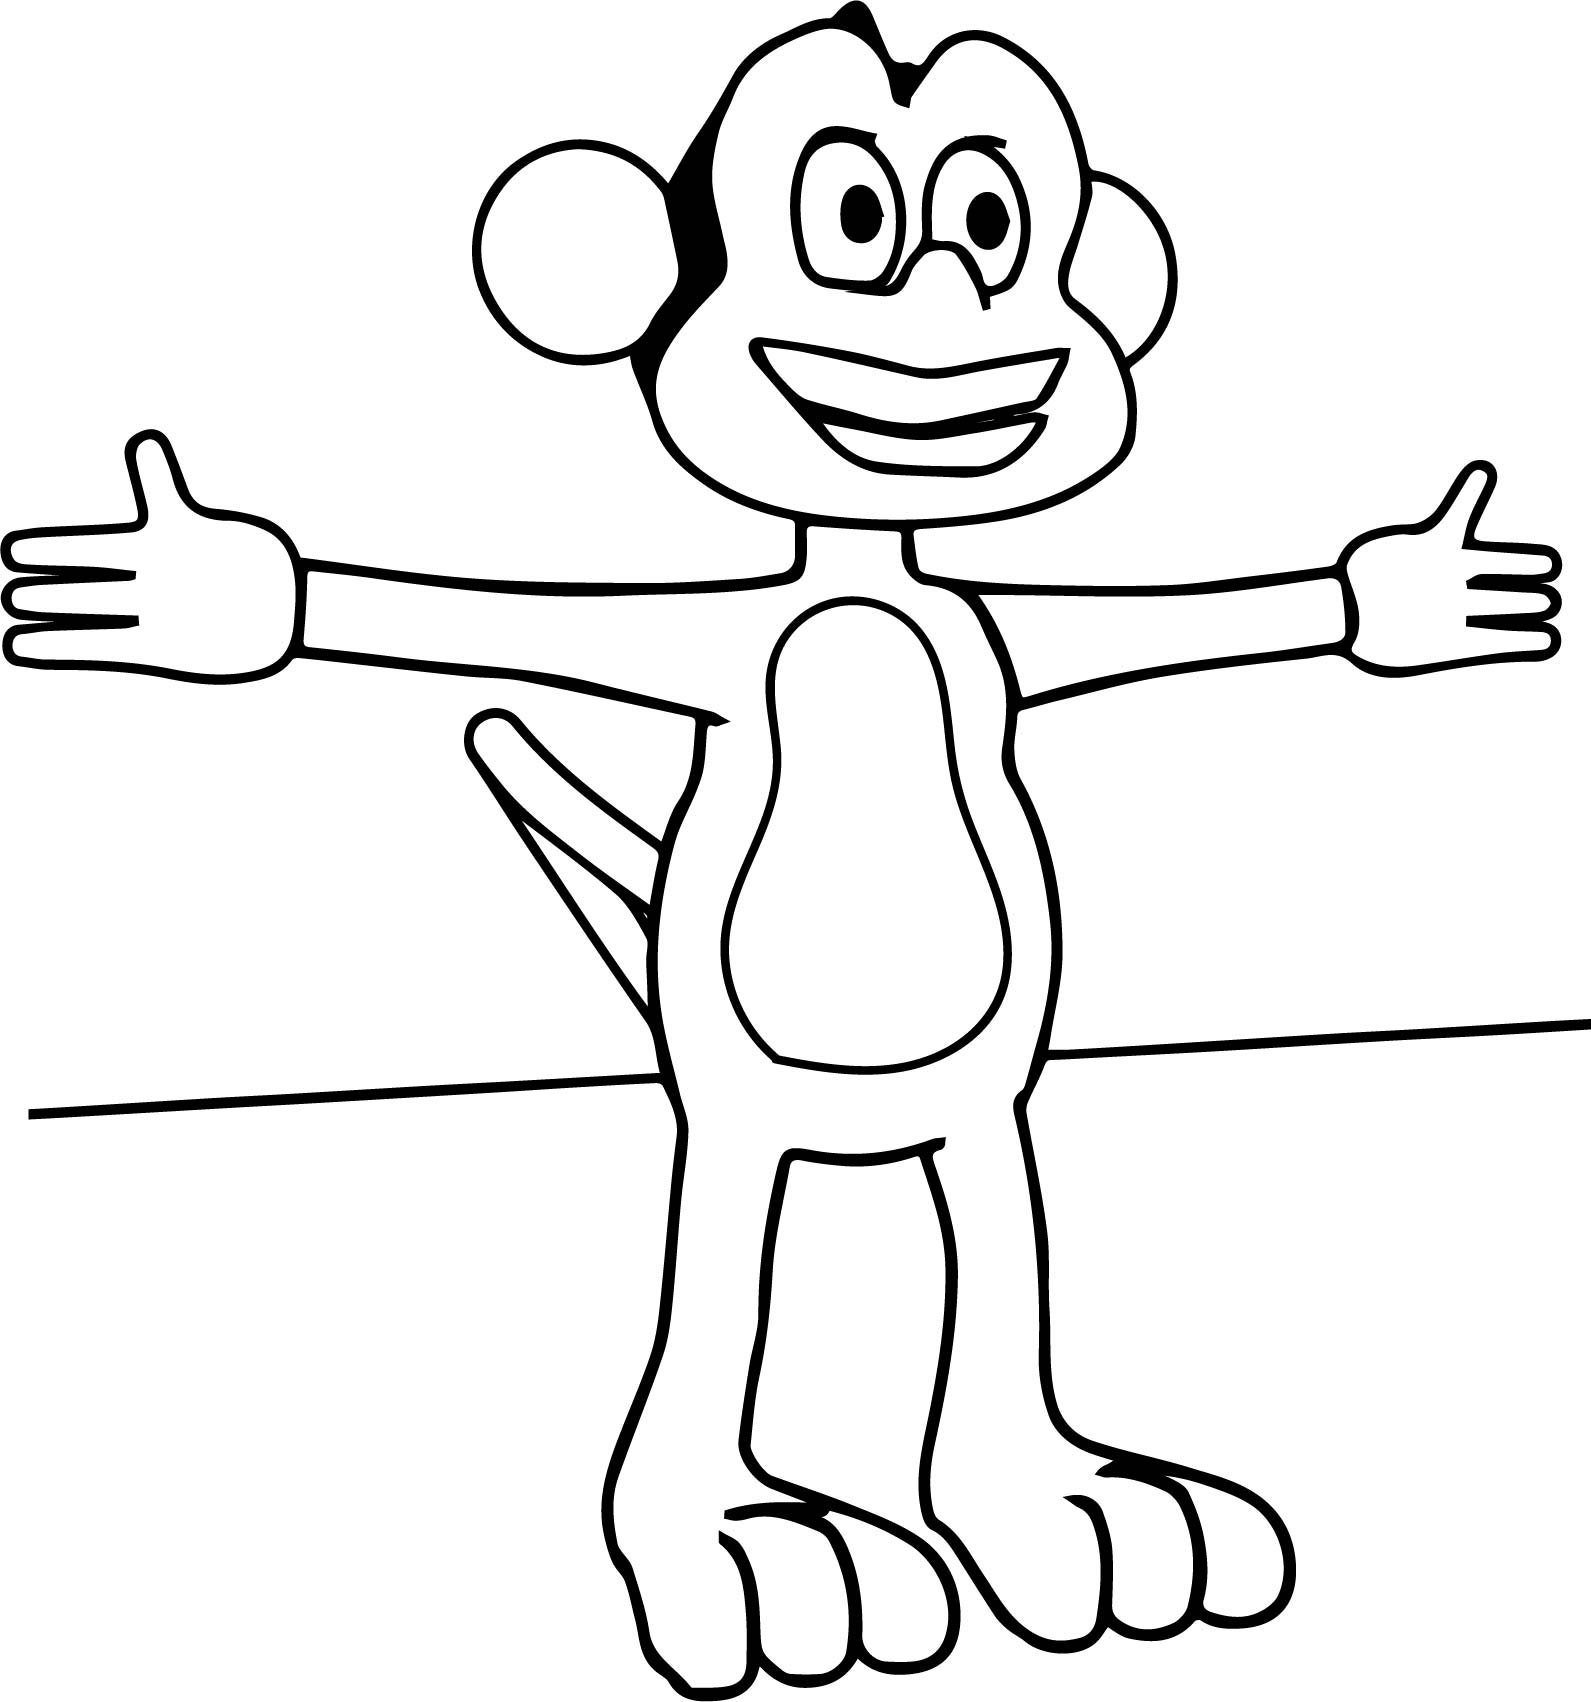 Cartoon Monkey Opened Hand Coloring Page